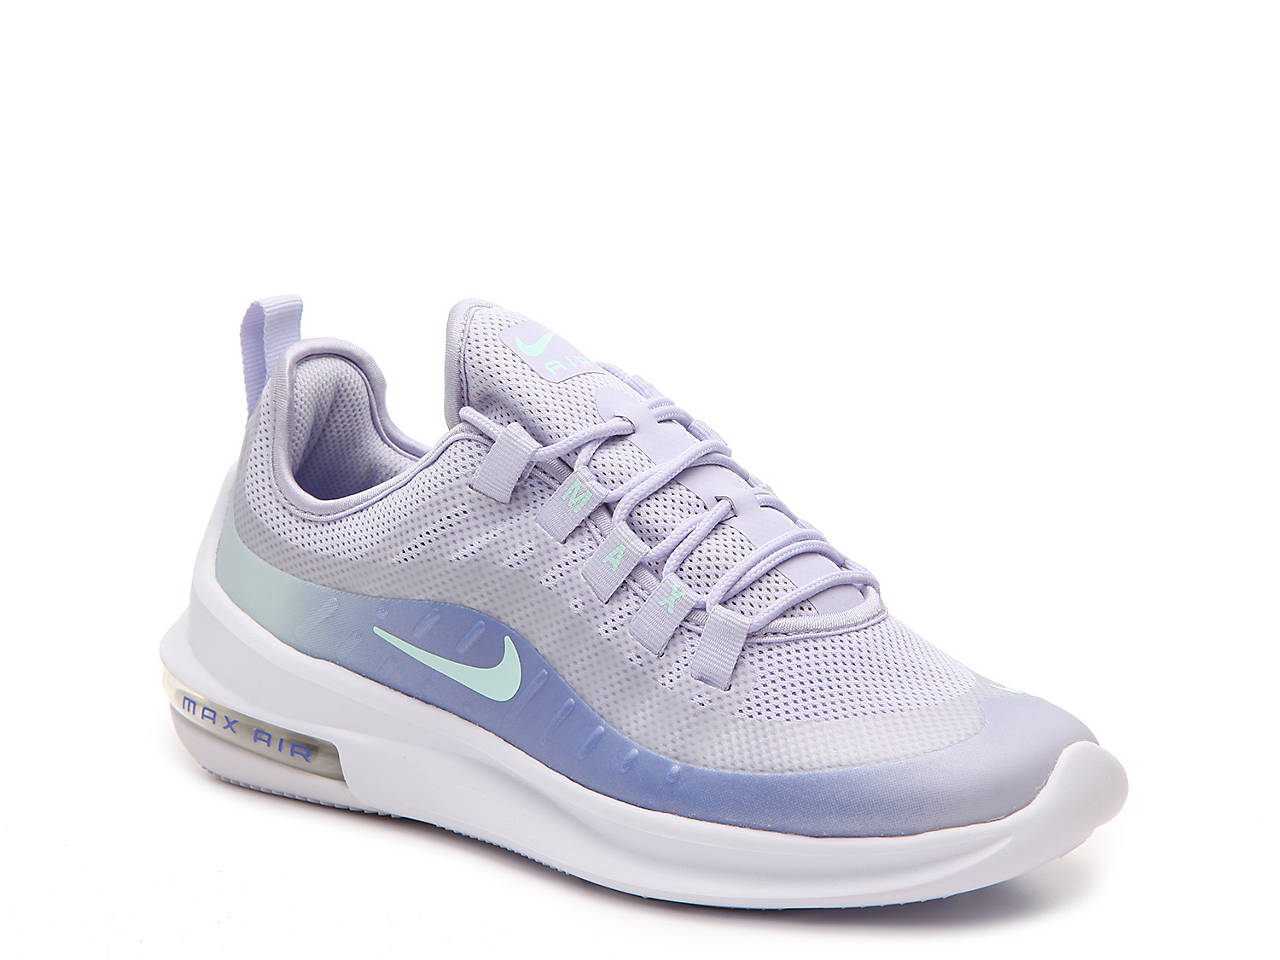 f88a4364d2 Nike Air Max Axis Premium Sneaker - Women's Women's Shoes | DSW